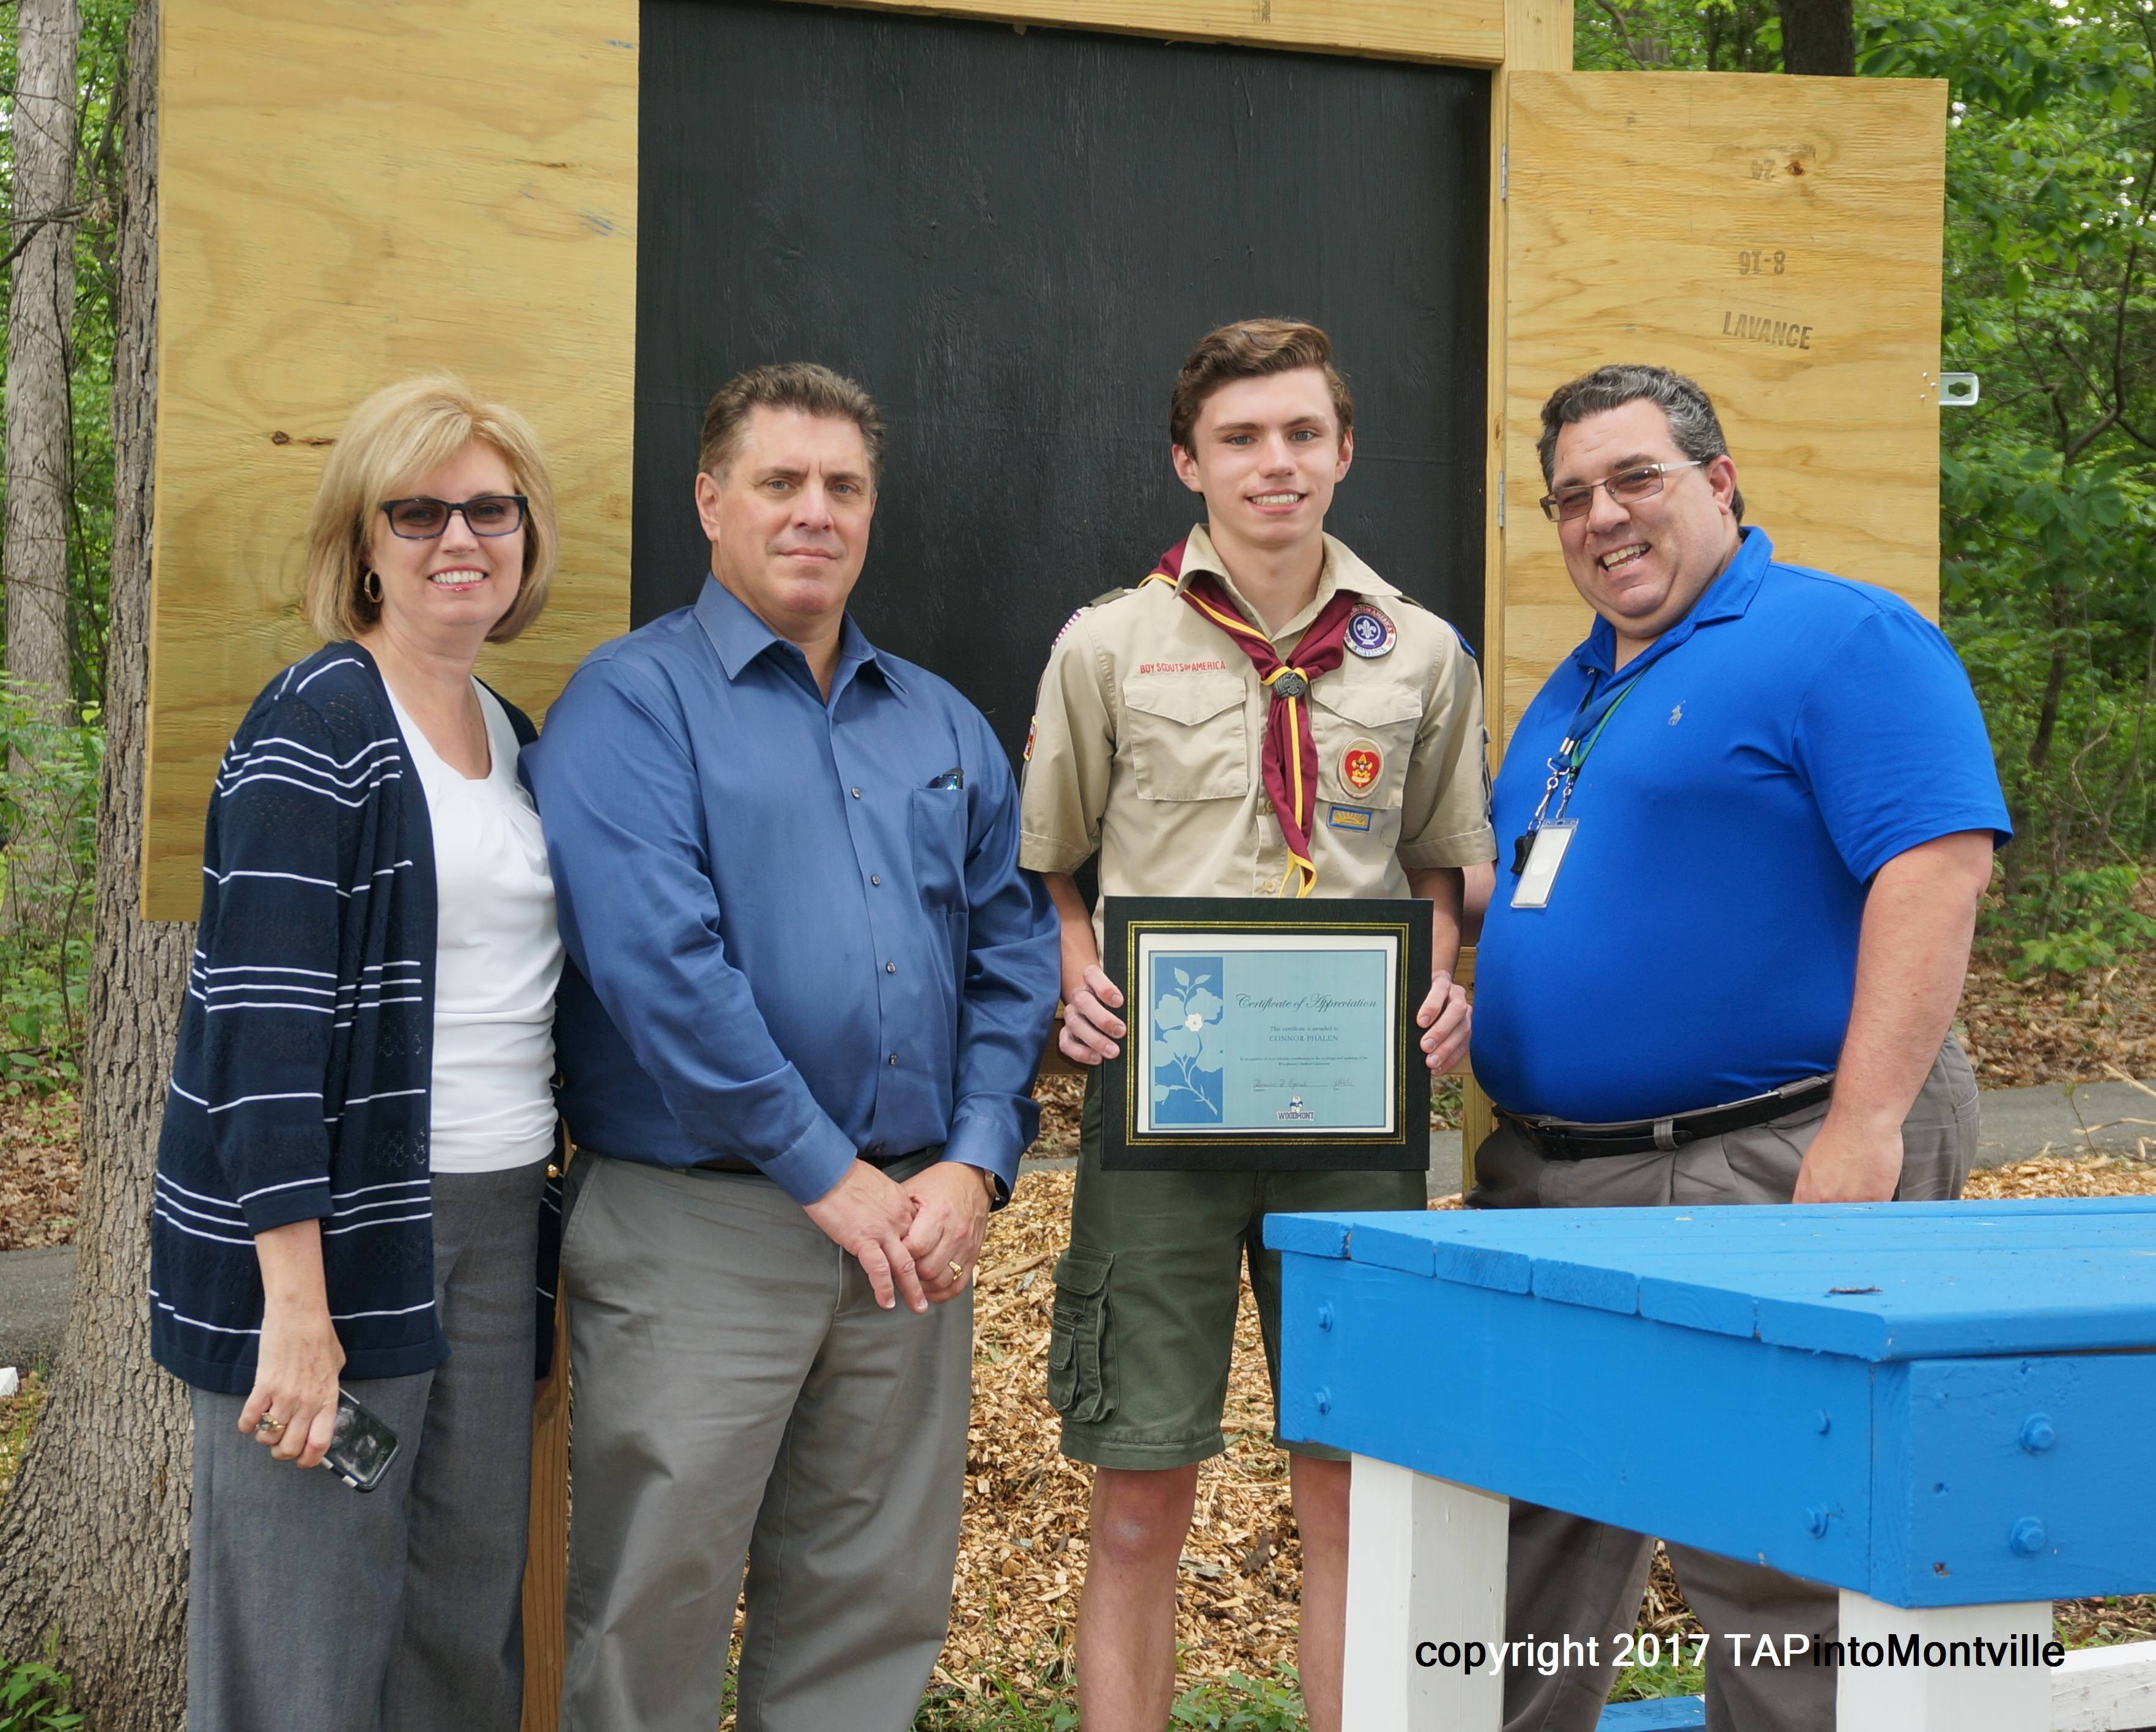 beb5973605b99267870b_a_Parents_Doreen_and_Patrick_Phalen__Scout_Conner_Phalen__and_Woodmont_Principal_Dominic_Esposito.jpg